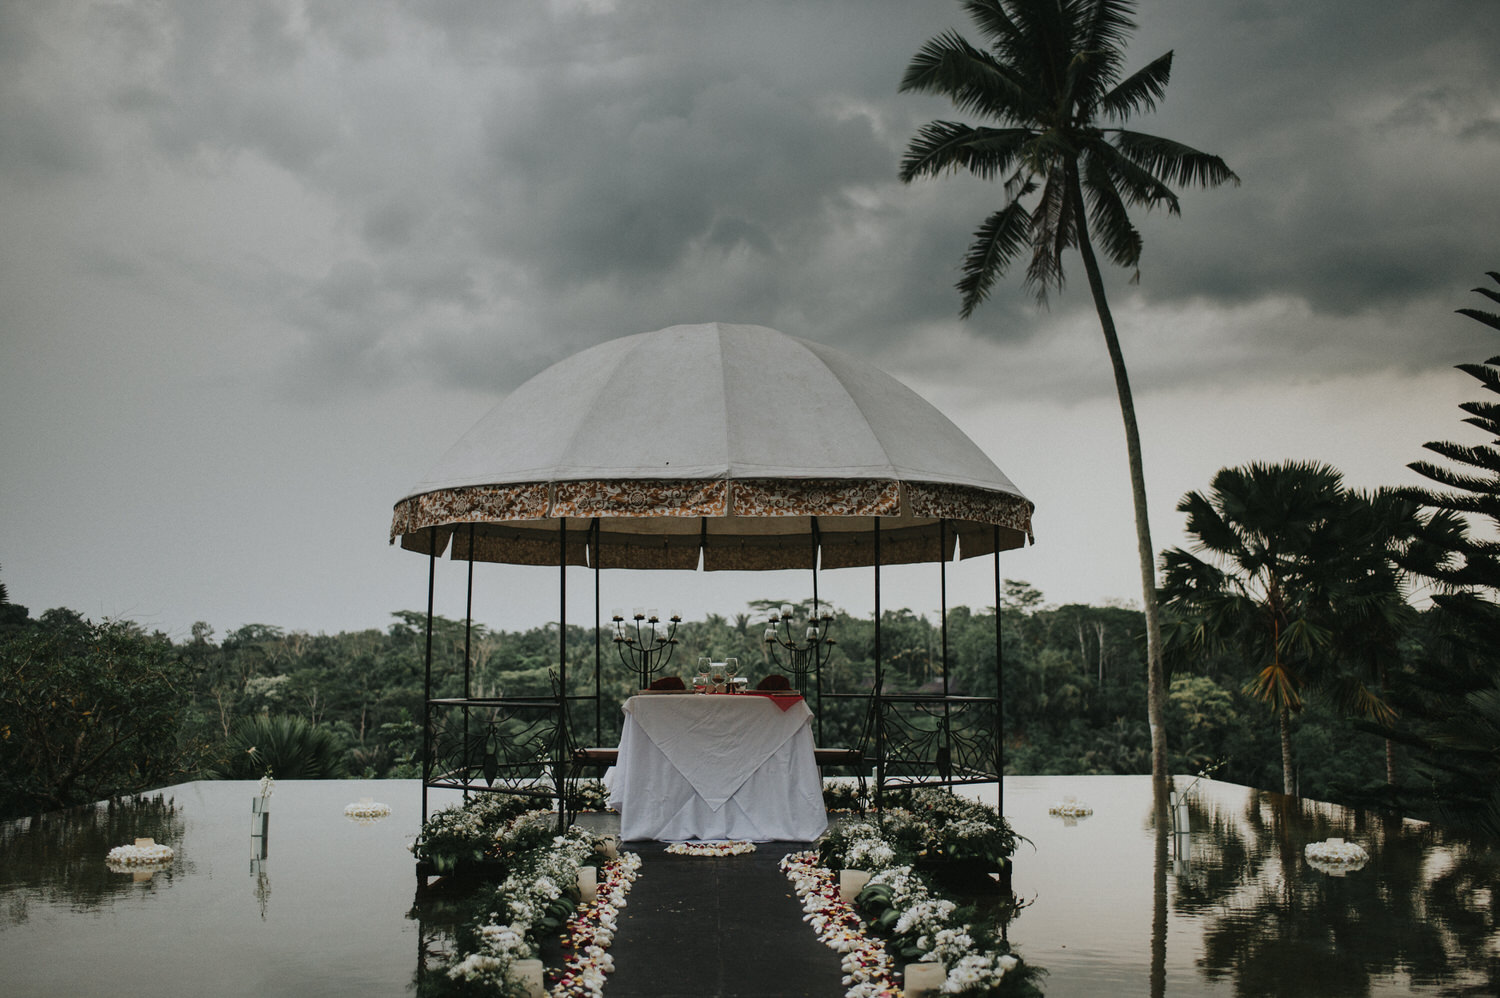 bali wedding - elopement - ubud wedding - diktatphotography - olga + Jason - 77